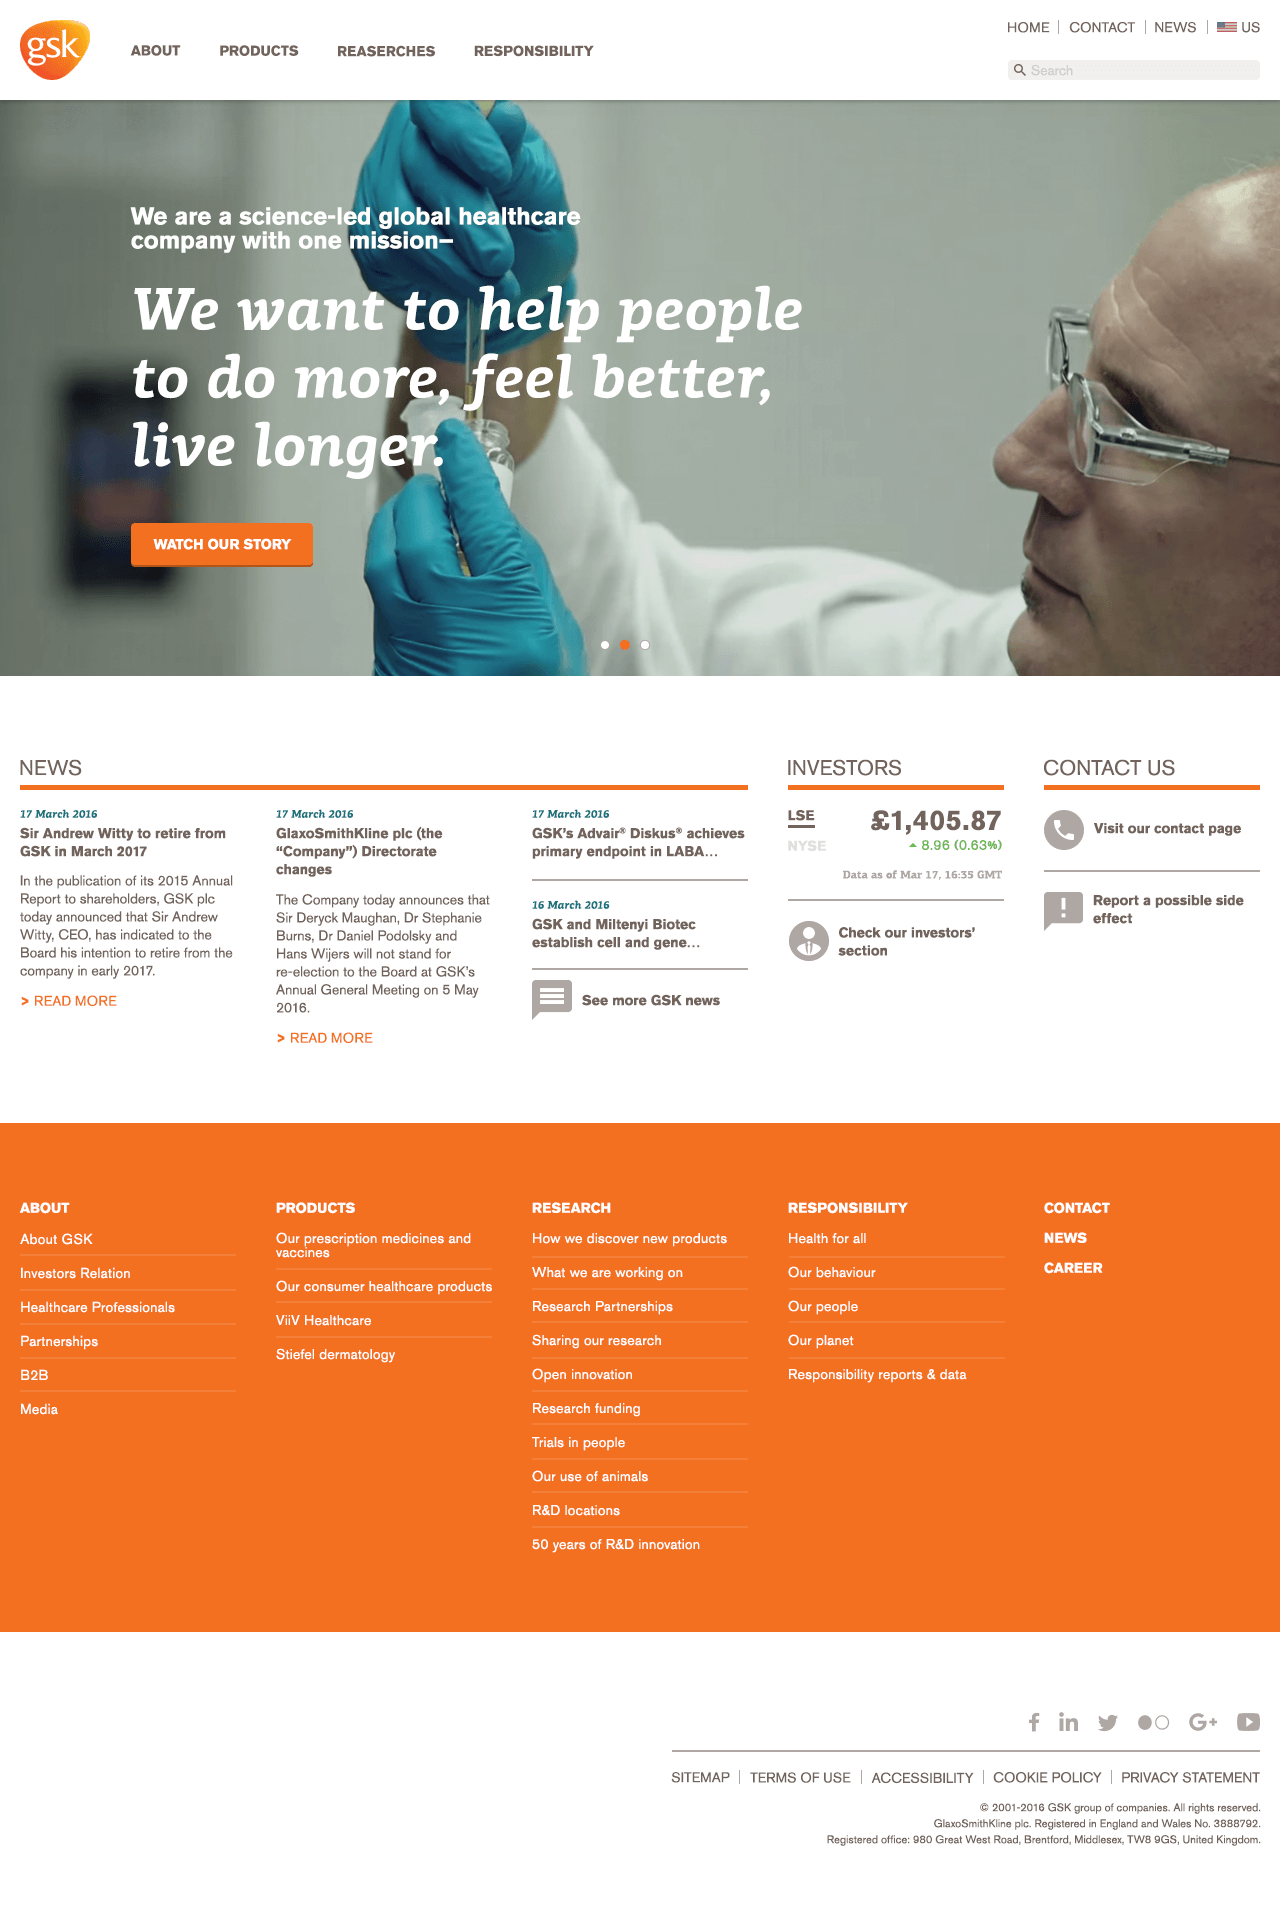 GSK Homepage Redesign